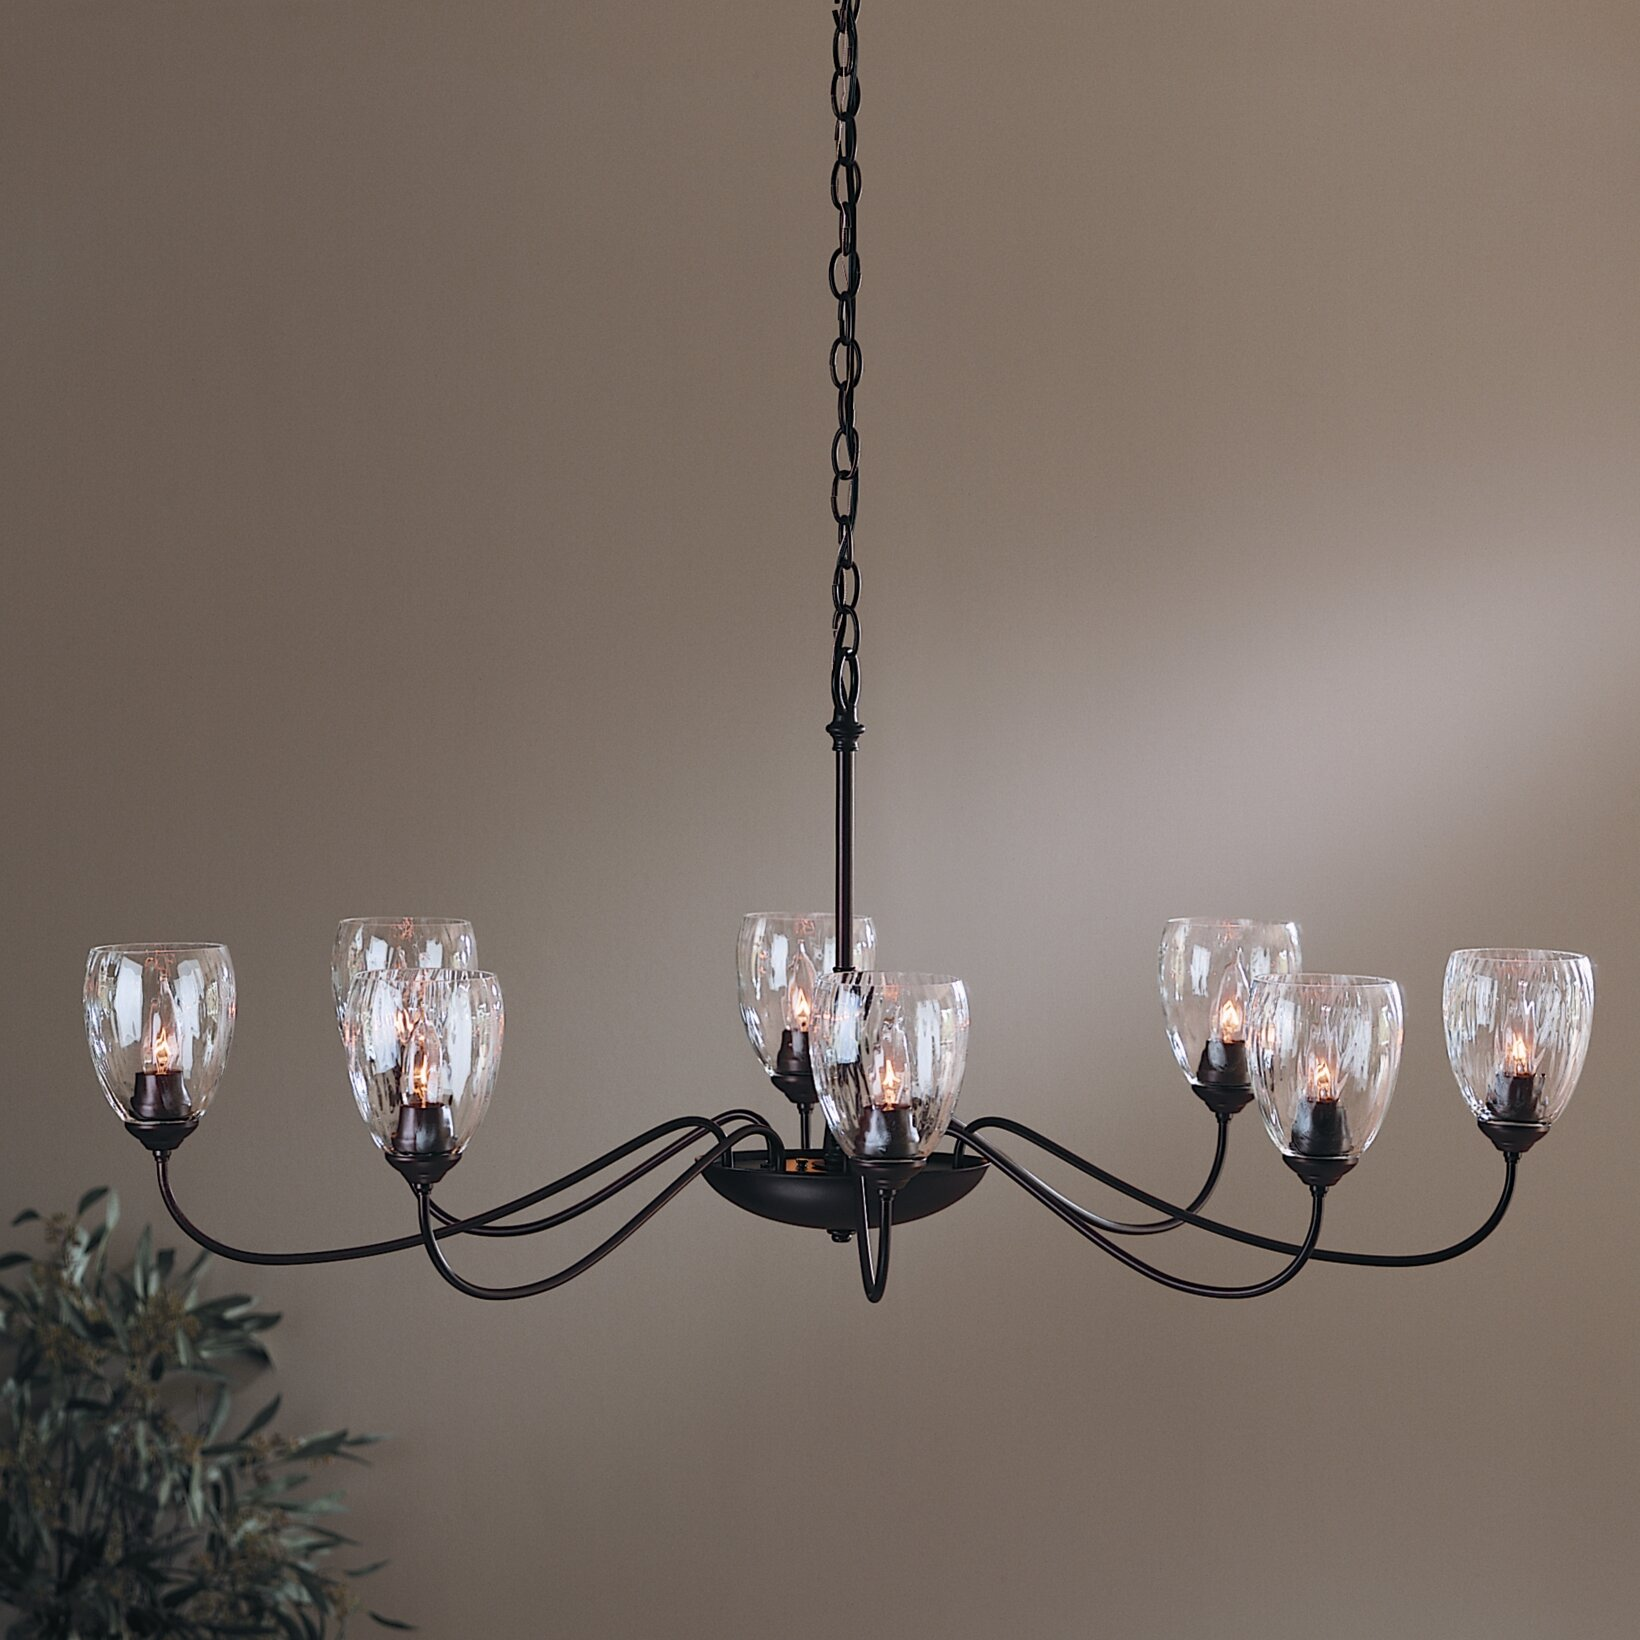 Hubbardton Forge 8 Light Shaded Chandelier & Reviews